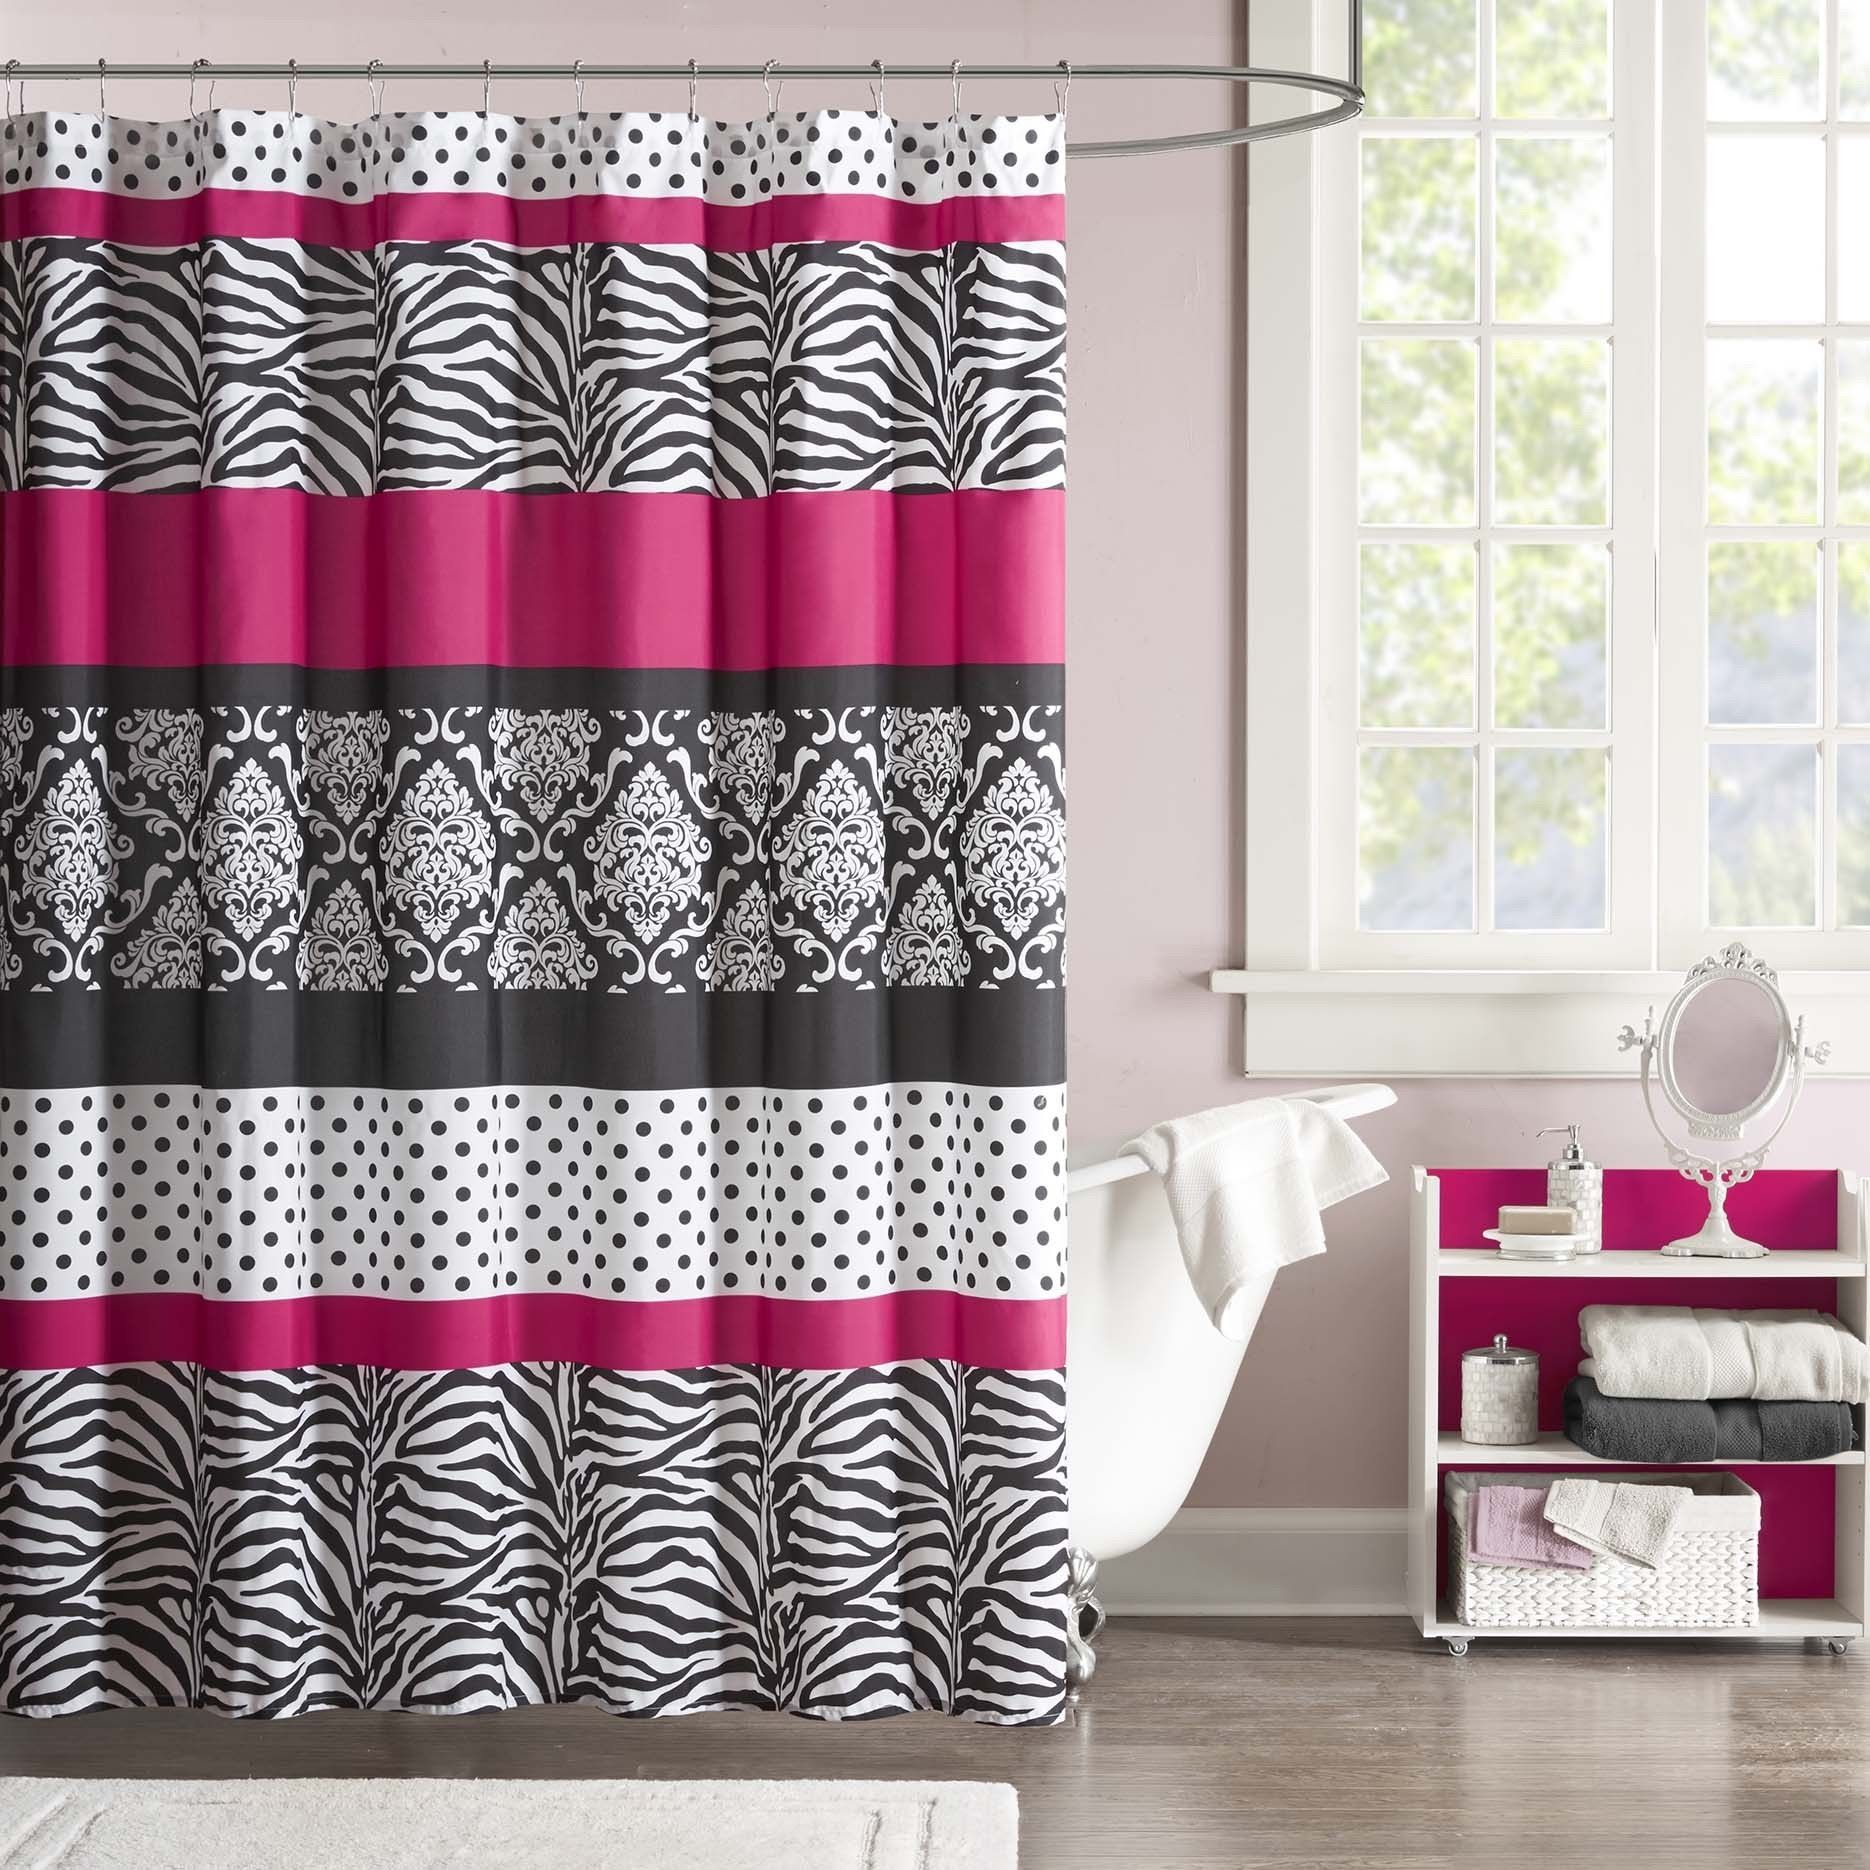 The Mi Zone Gemma shower curtain offers an edgy yet girly look for ...